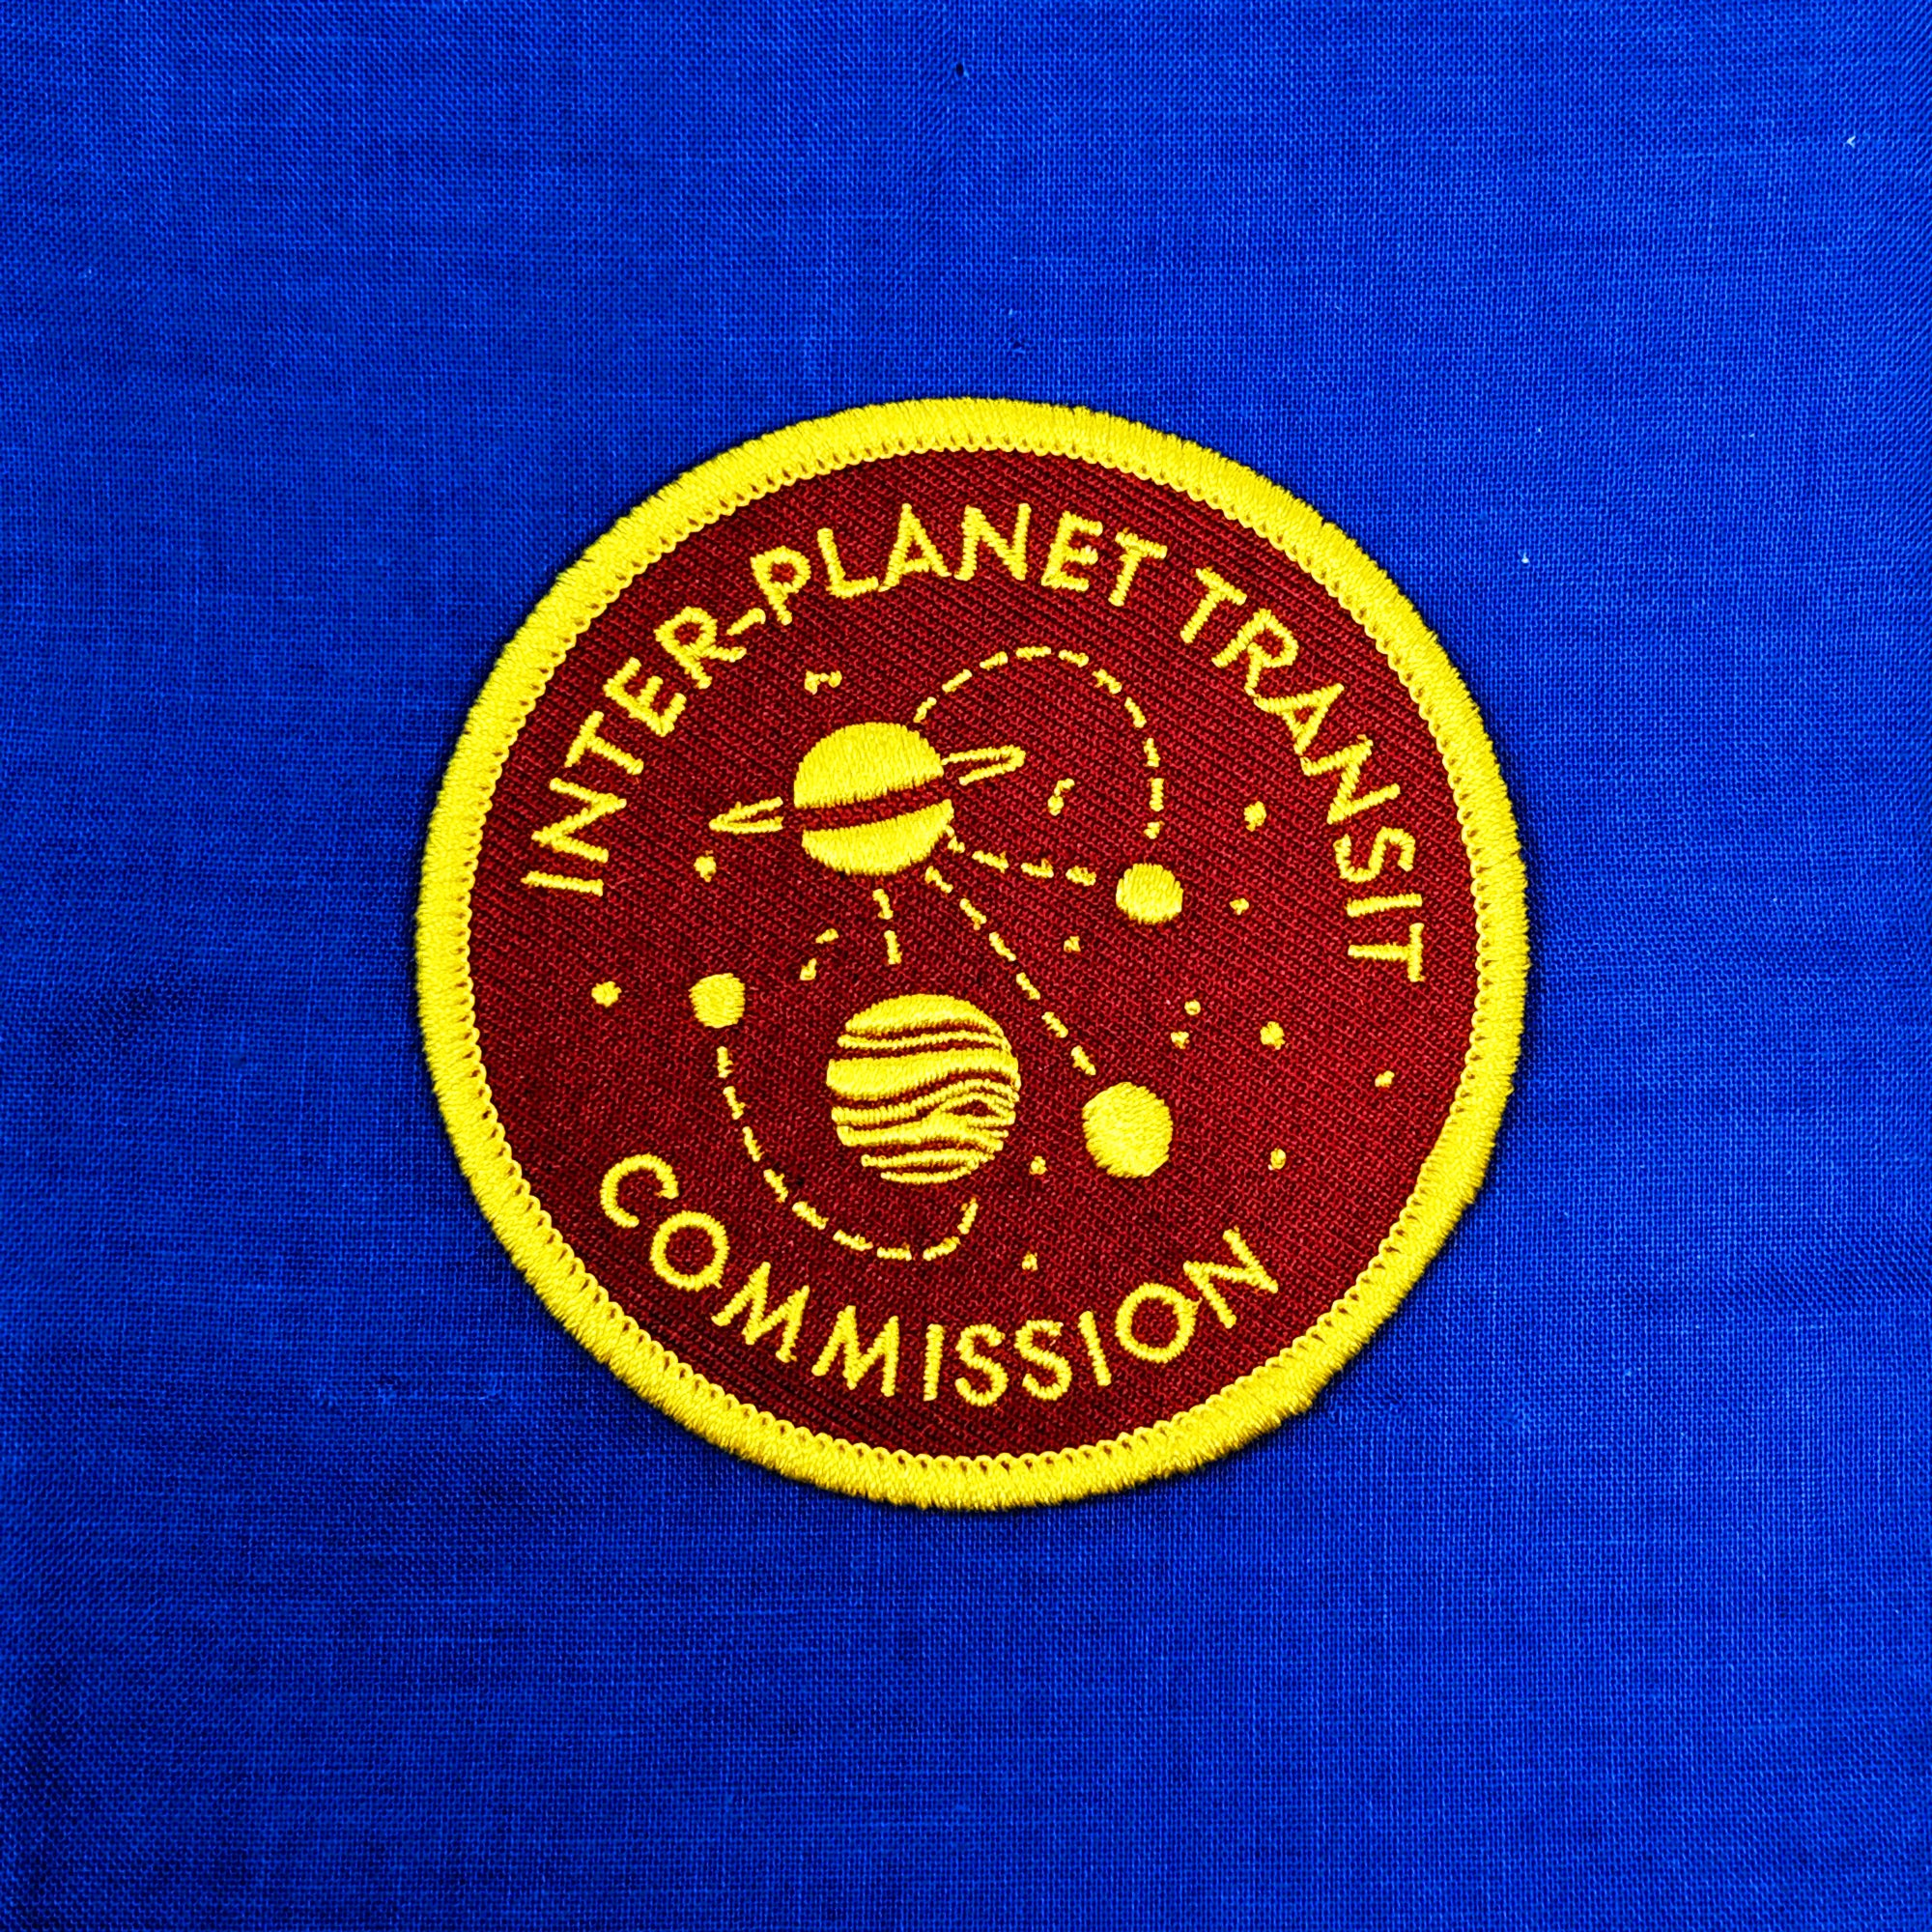 Inter-Planet Transit Commission Iron-On Patch